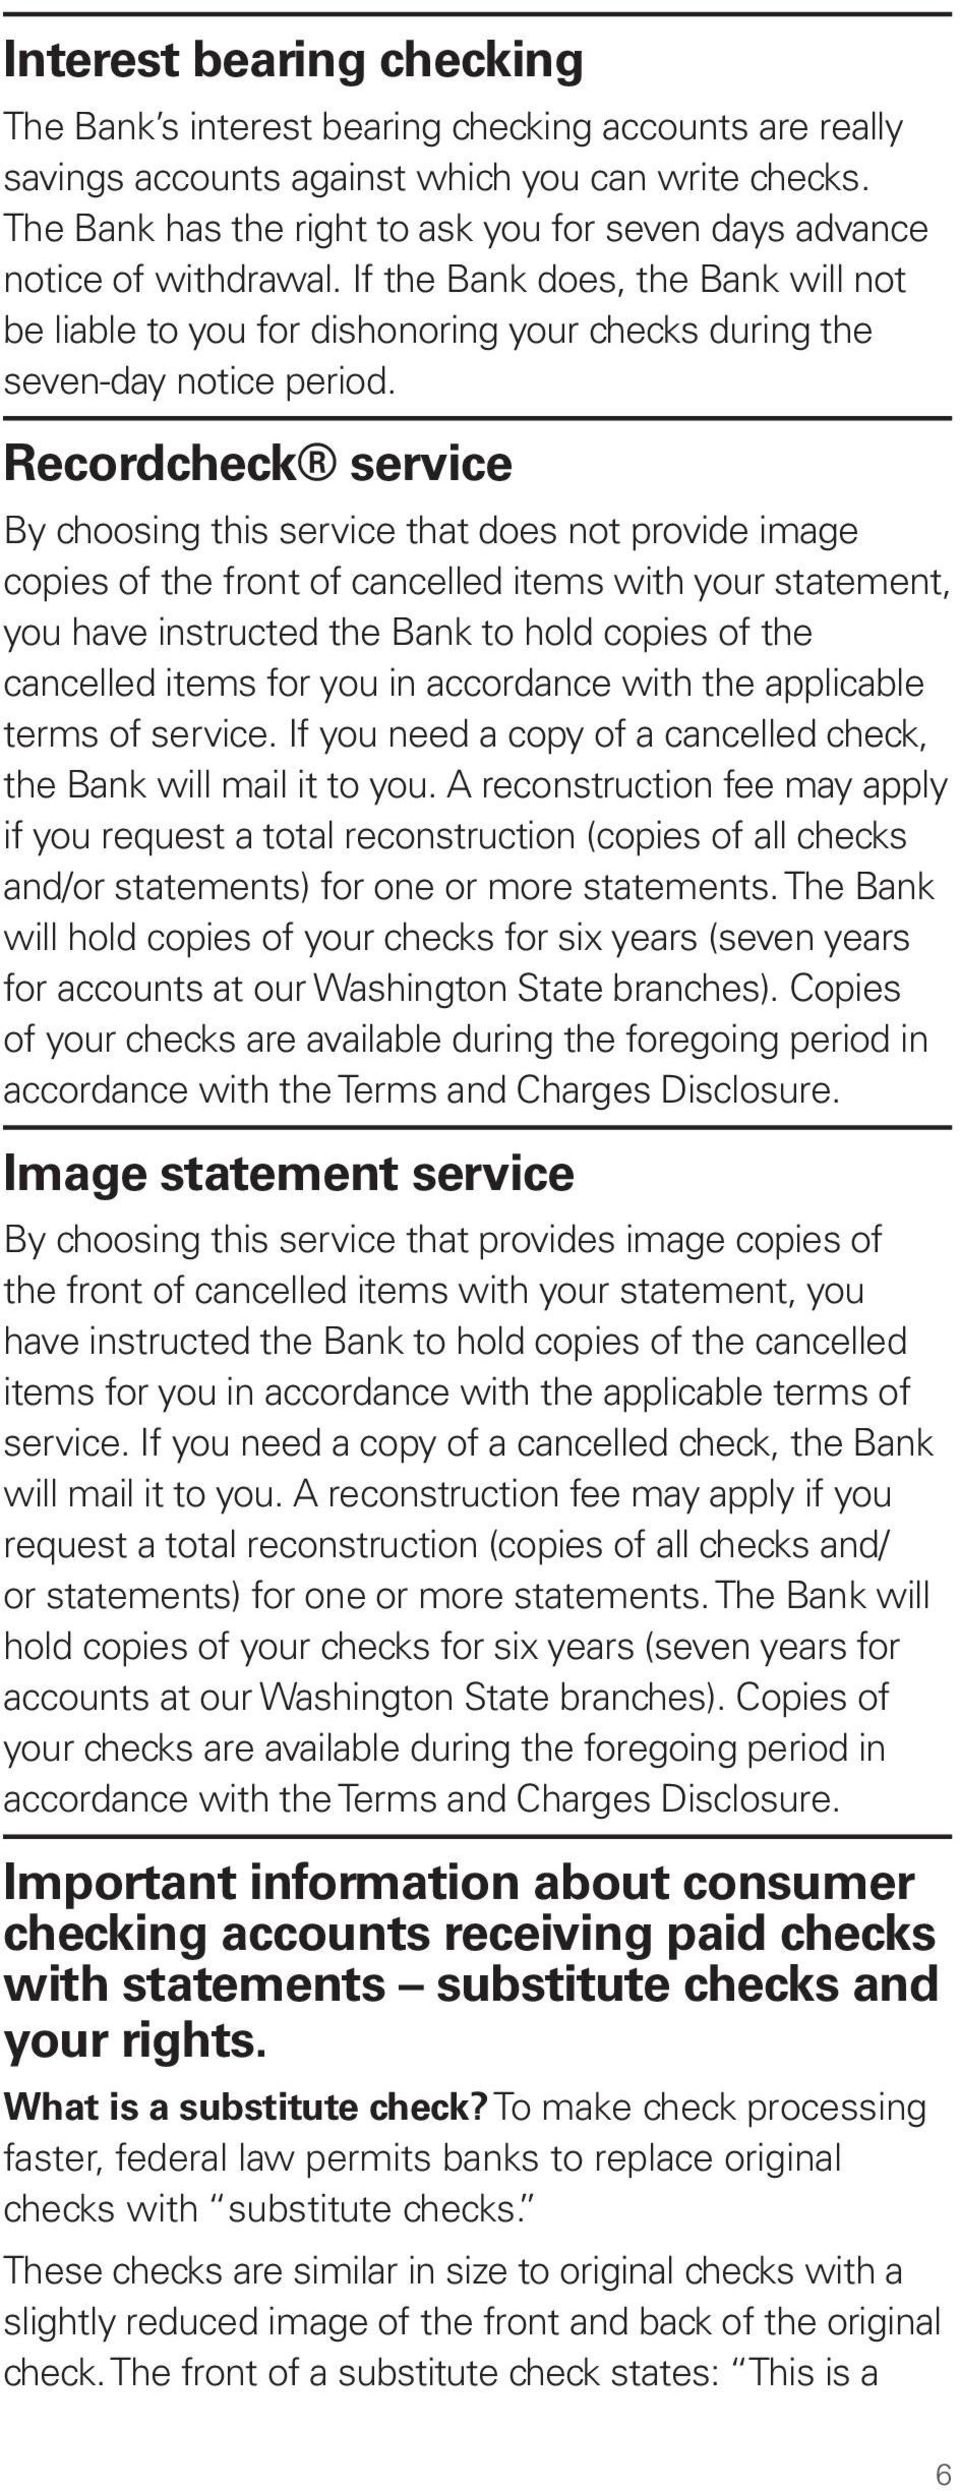 Recordcheck service By choosing this service that does not provide image copies of the front of cancelled items with your statement, you have instructed the Bank to hold copies of the cancelled items